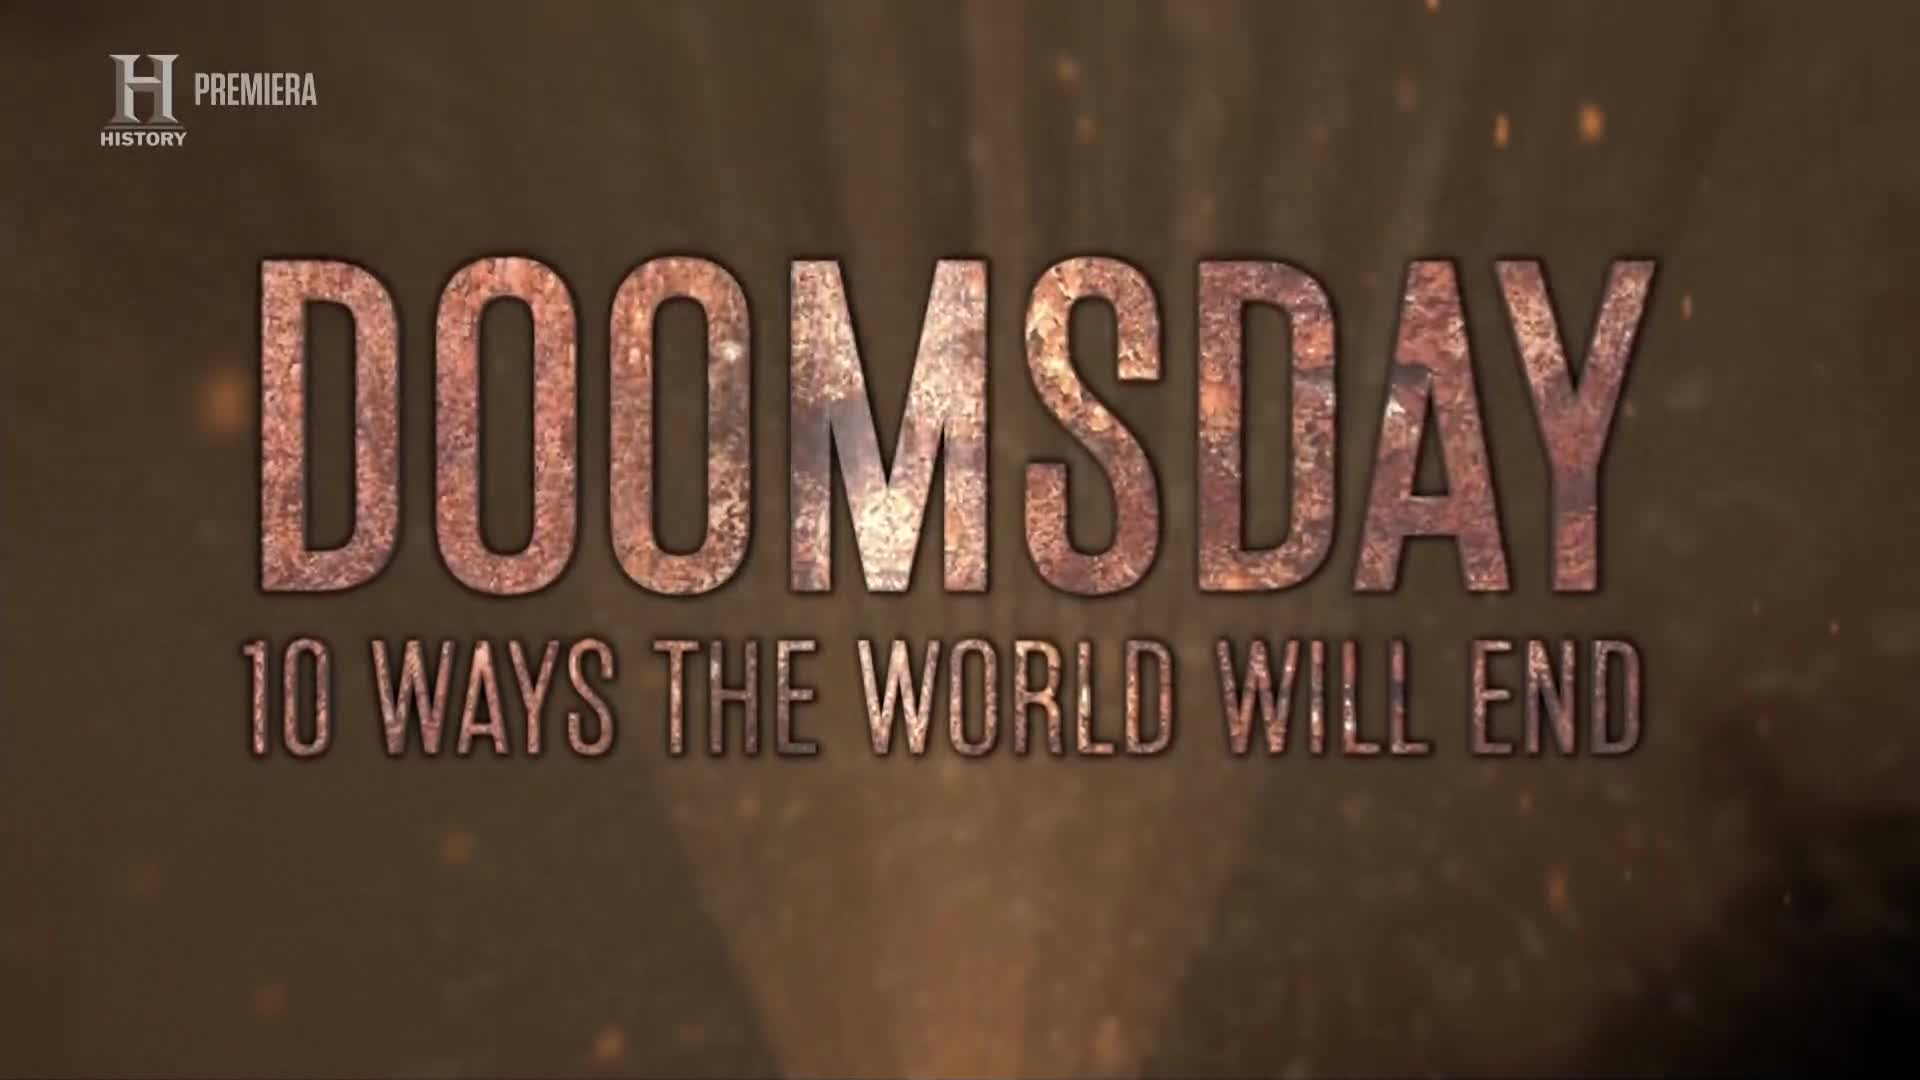 Koniec świata na 10 sposobów: Wojna atomowa Odcinek 5 / Doomsday: 10 Ways The World Will End: Nuclear War Episode 5 (2016) 1080p HDTV Lektor PL